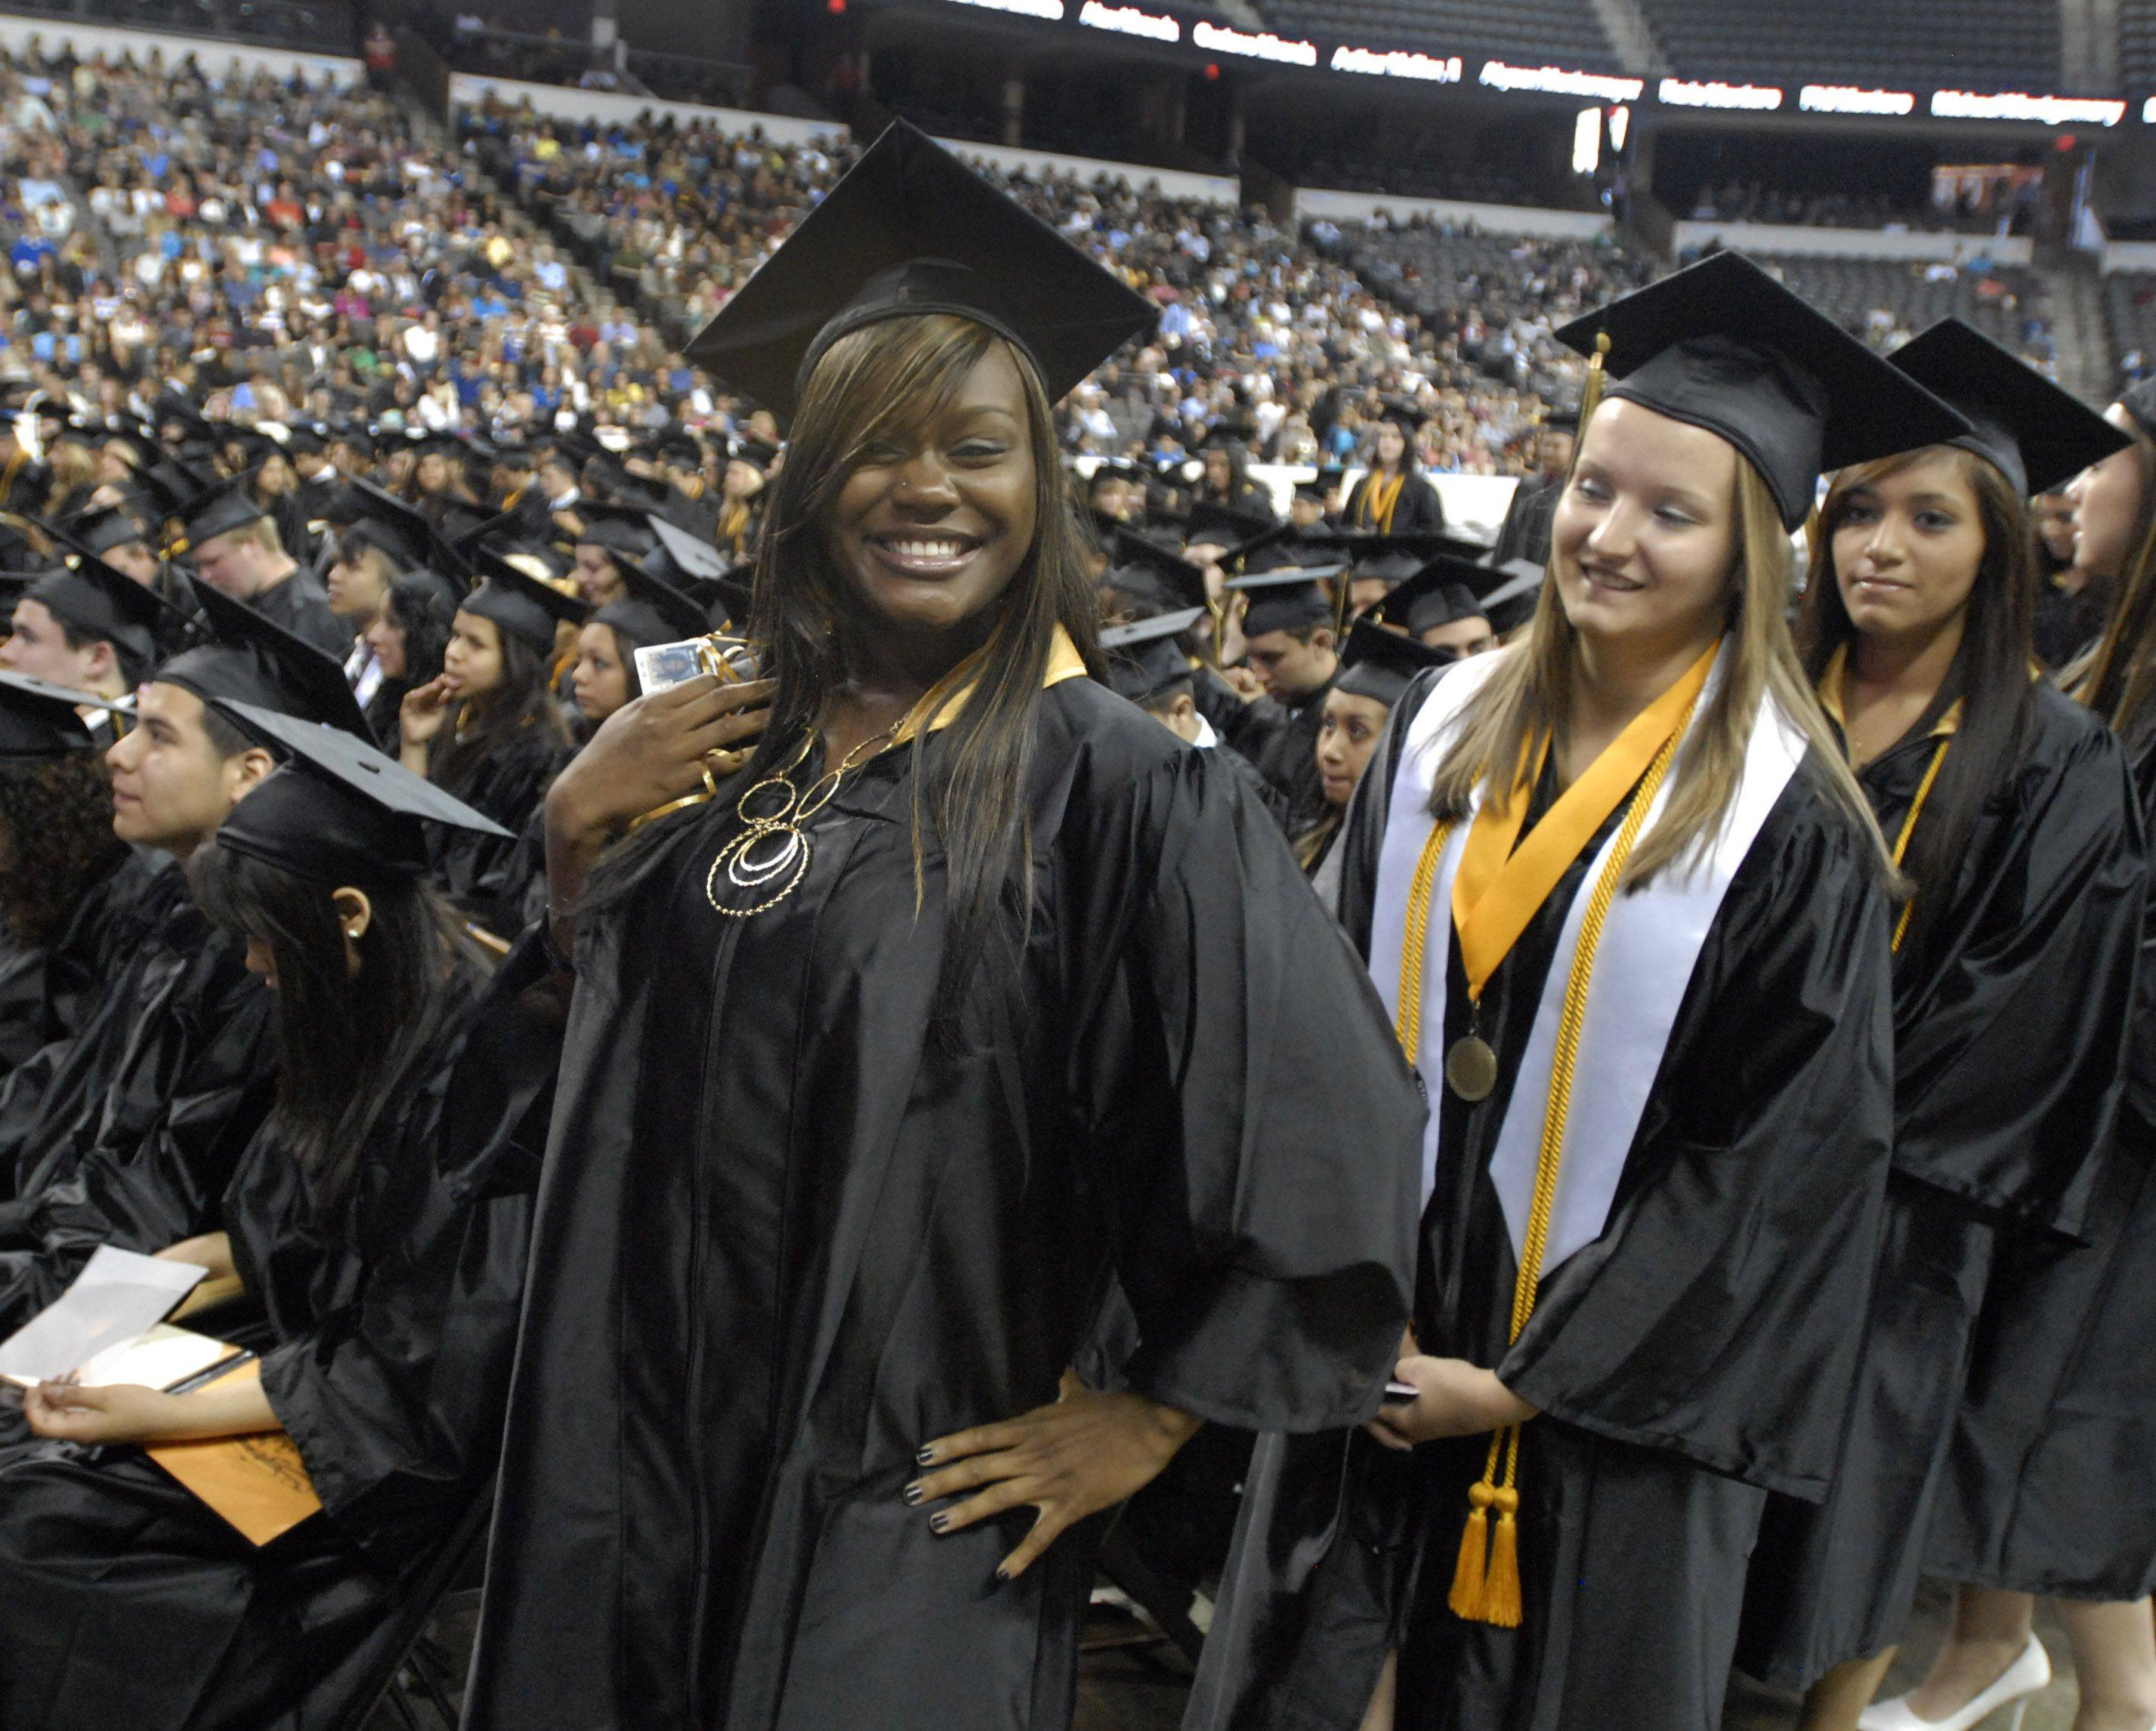 Images from the Streamwood high school graduation on May 28th at the Sears Centre.